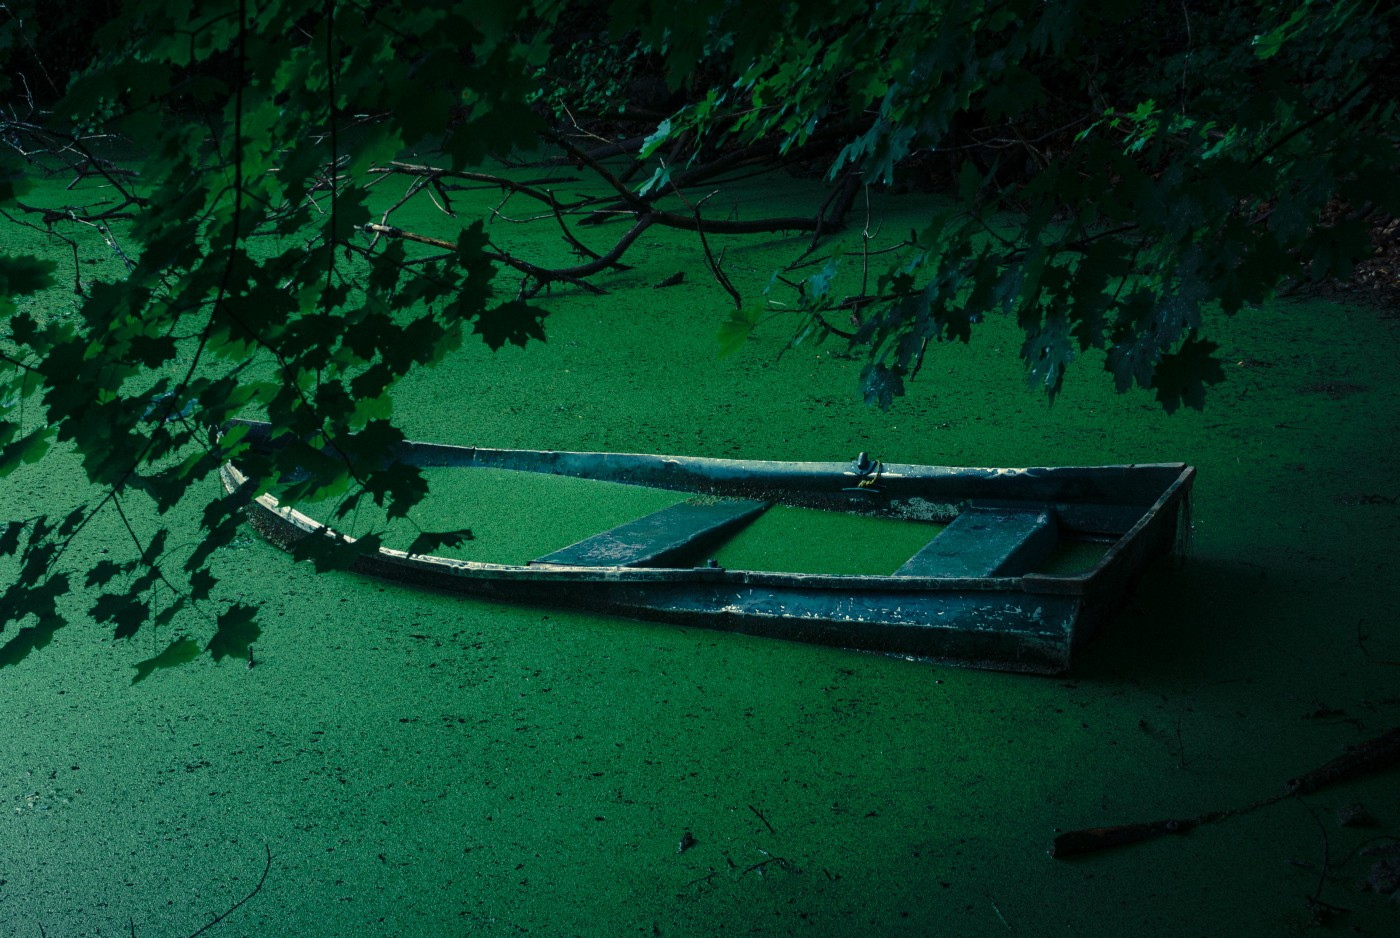 mostly sunken row boat in an algae-covered pond.